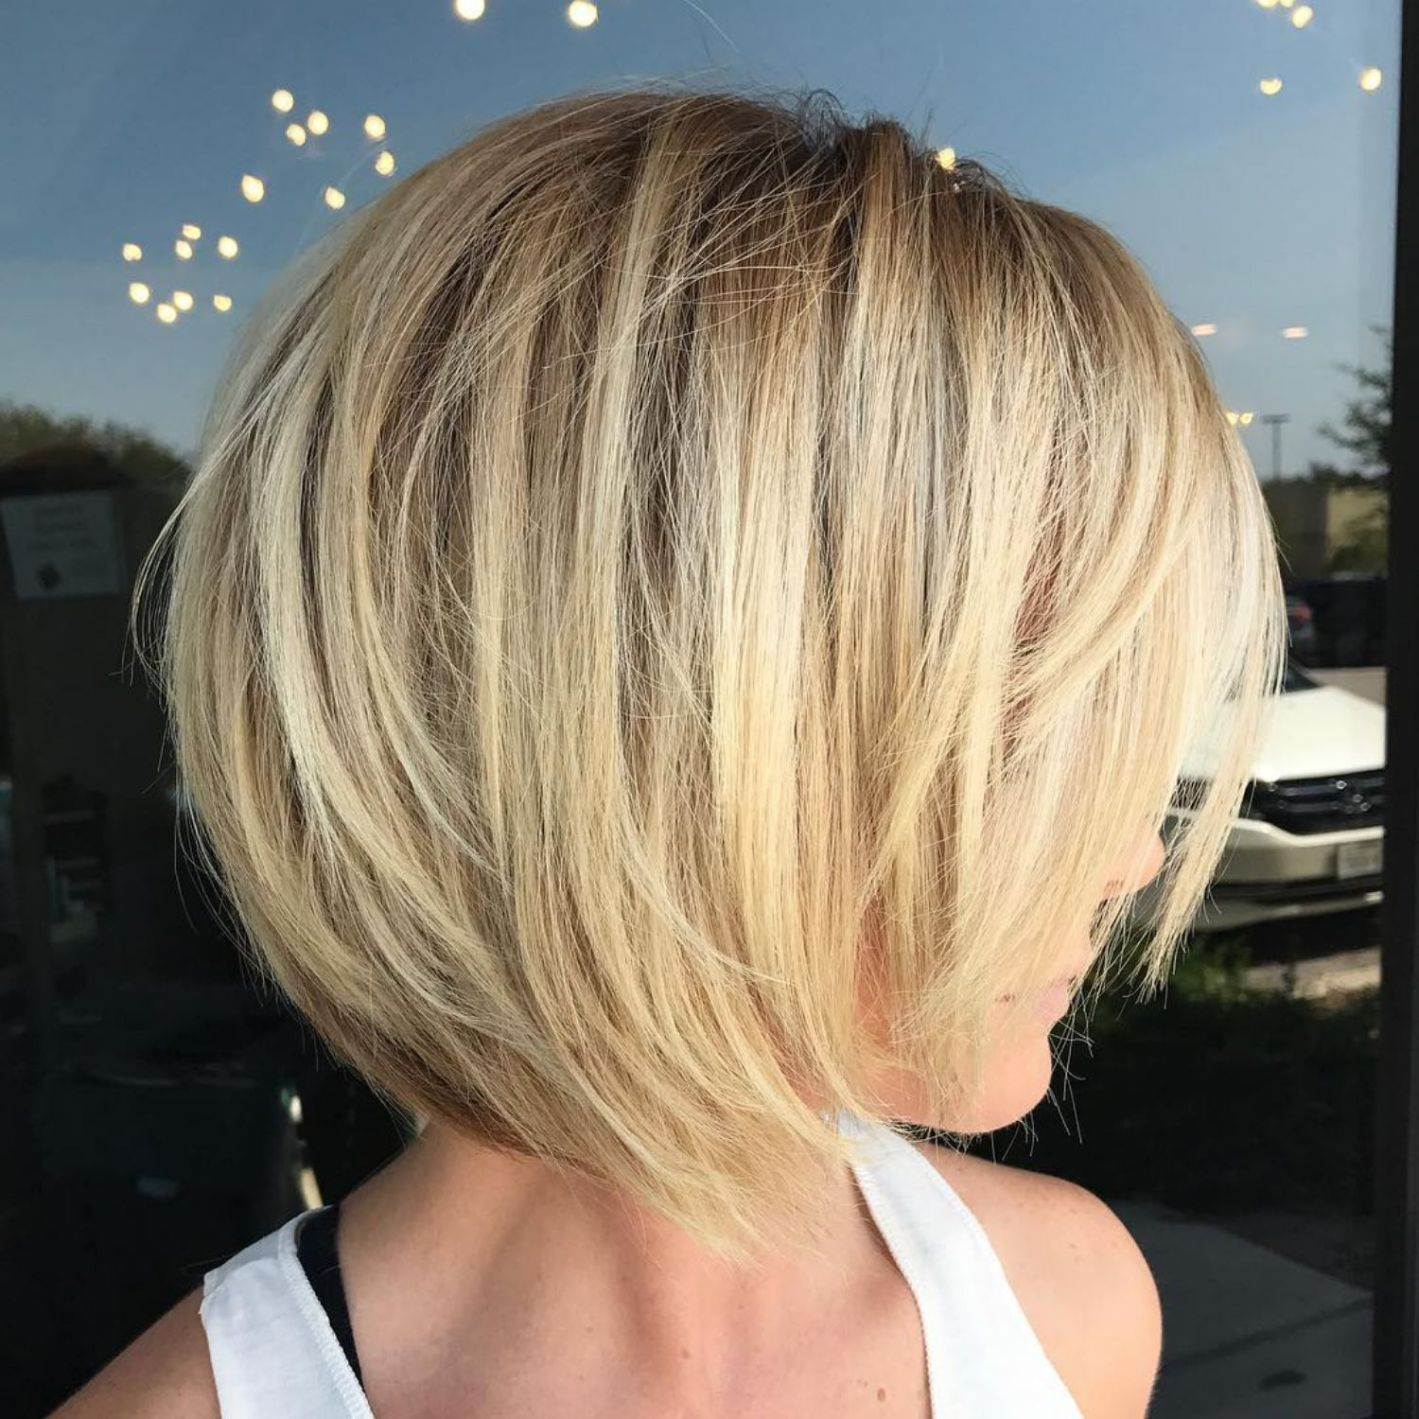 34 Stylish Layered Bob Hairstyles – Eazy Glam